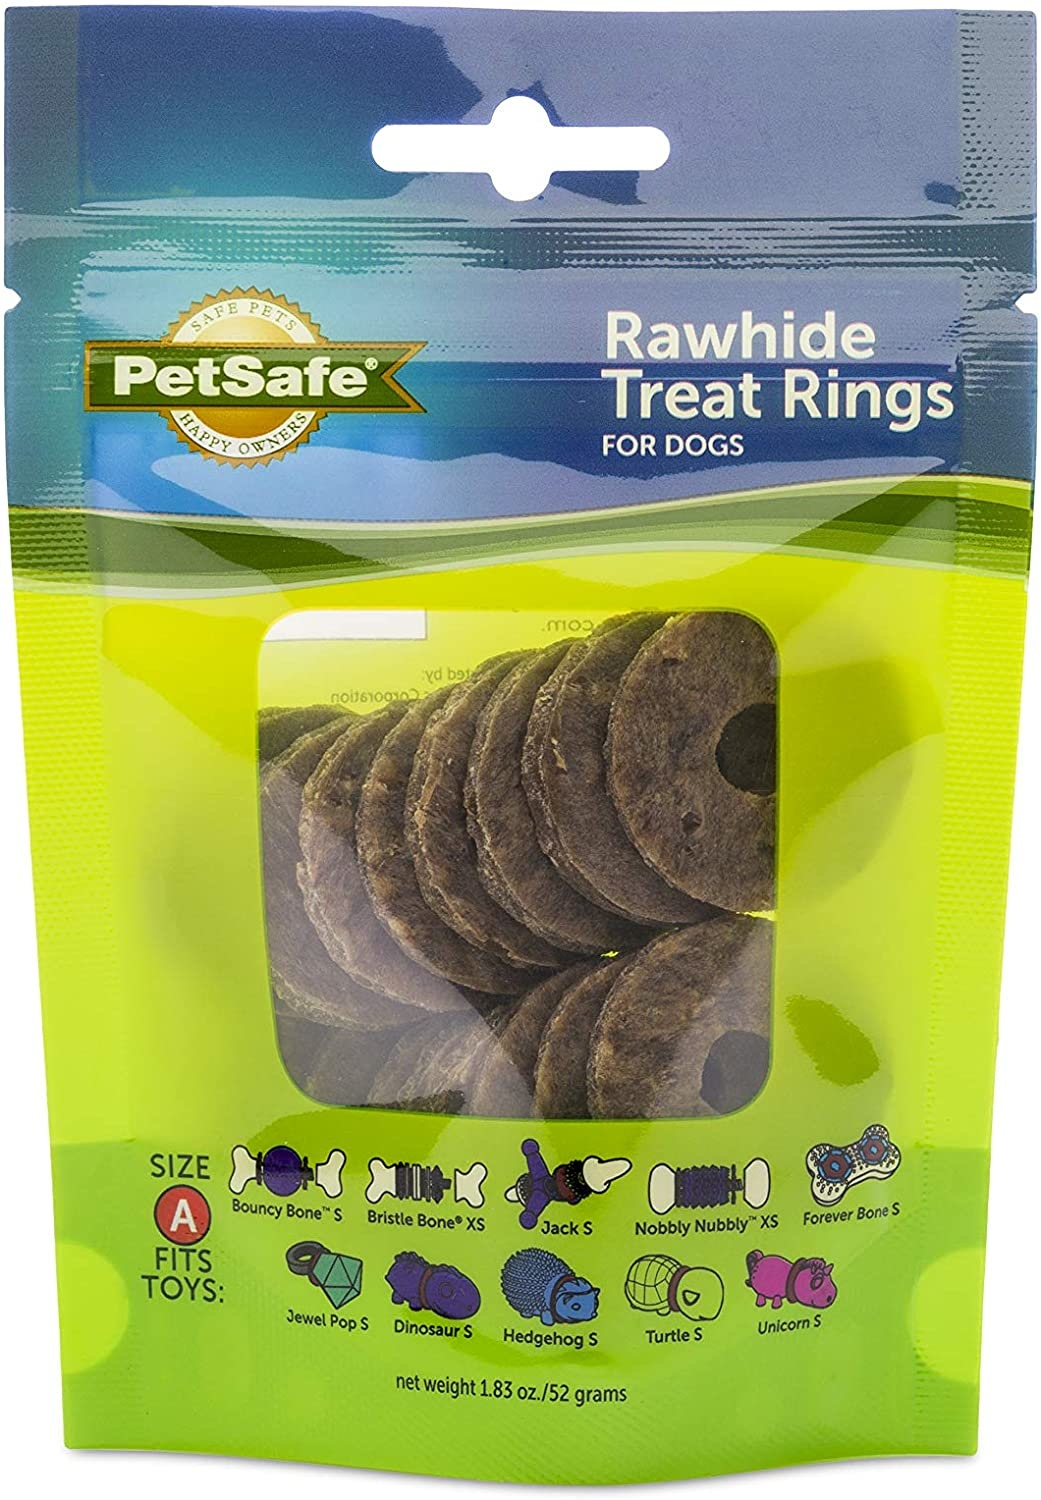 Petsafe- General Busy Buddy SM Rawhide Rings